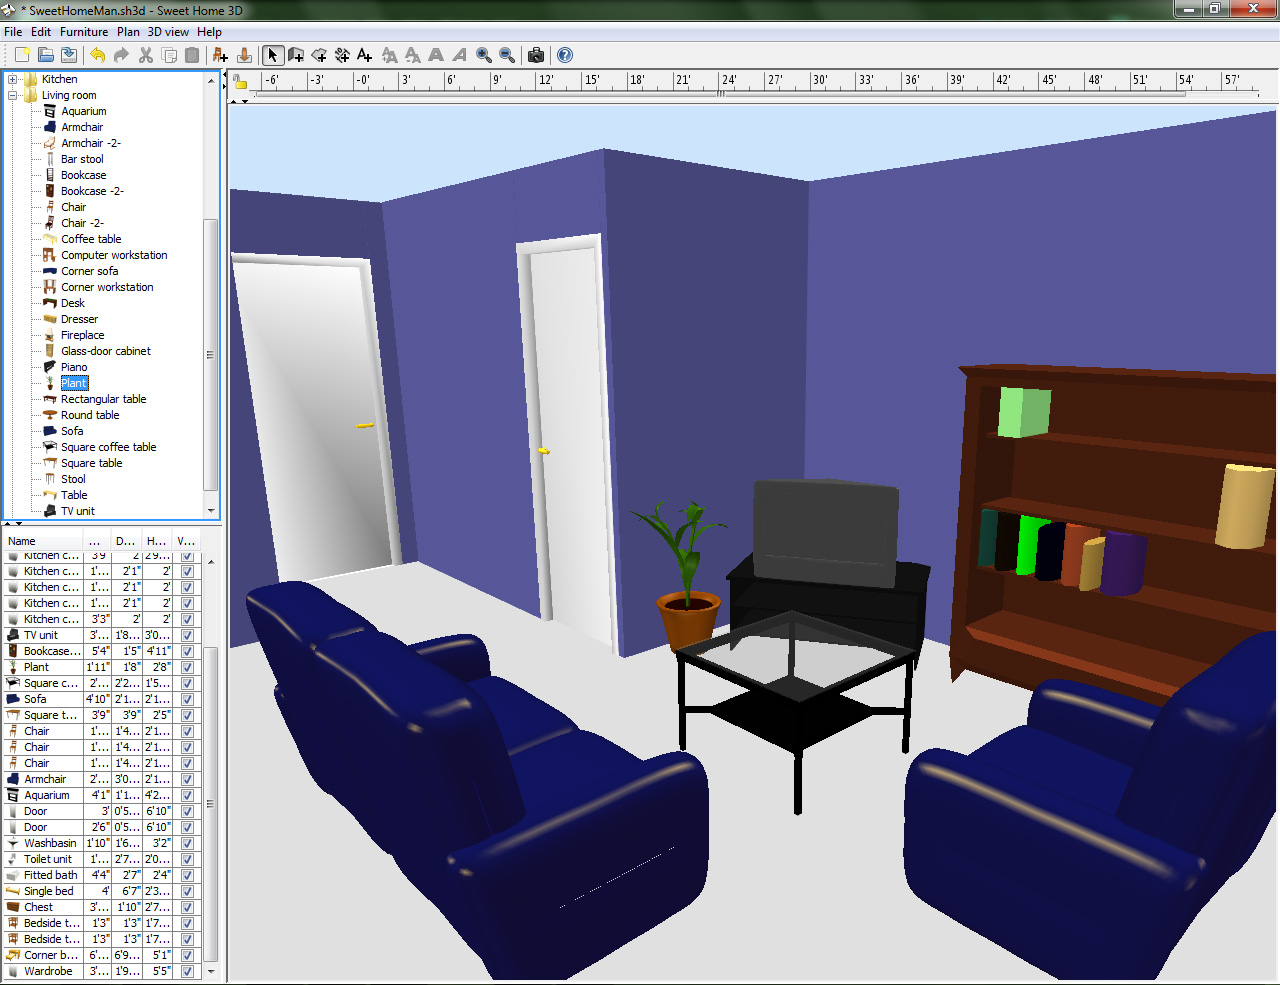 House interior design software Free 3d building design software